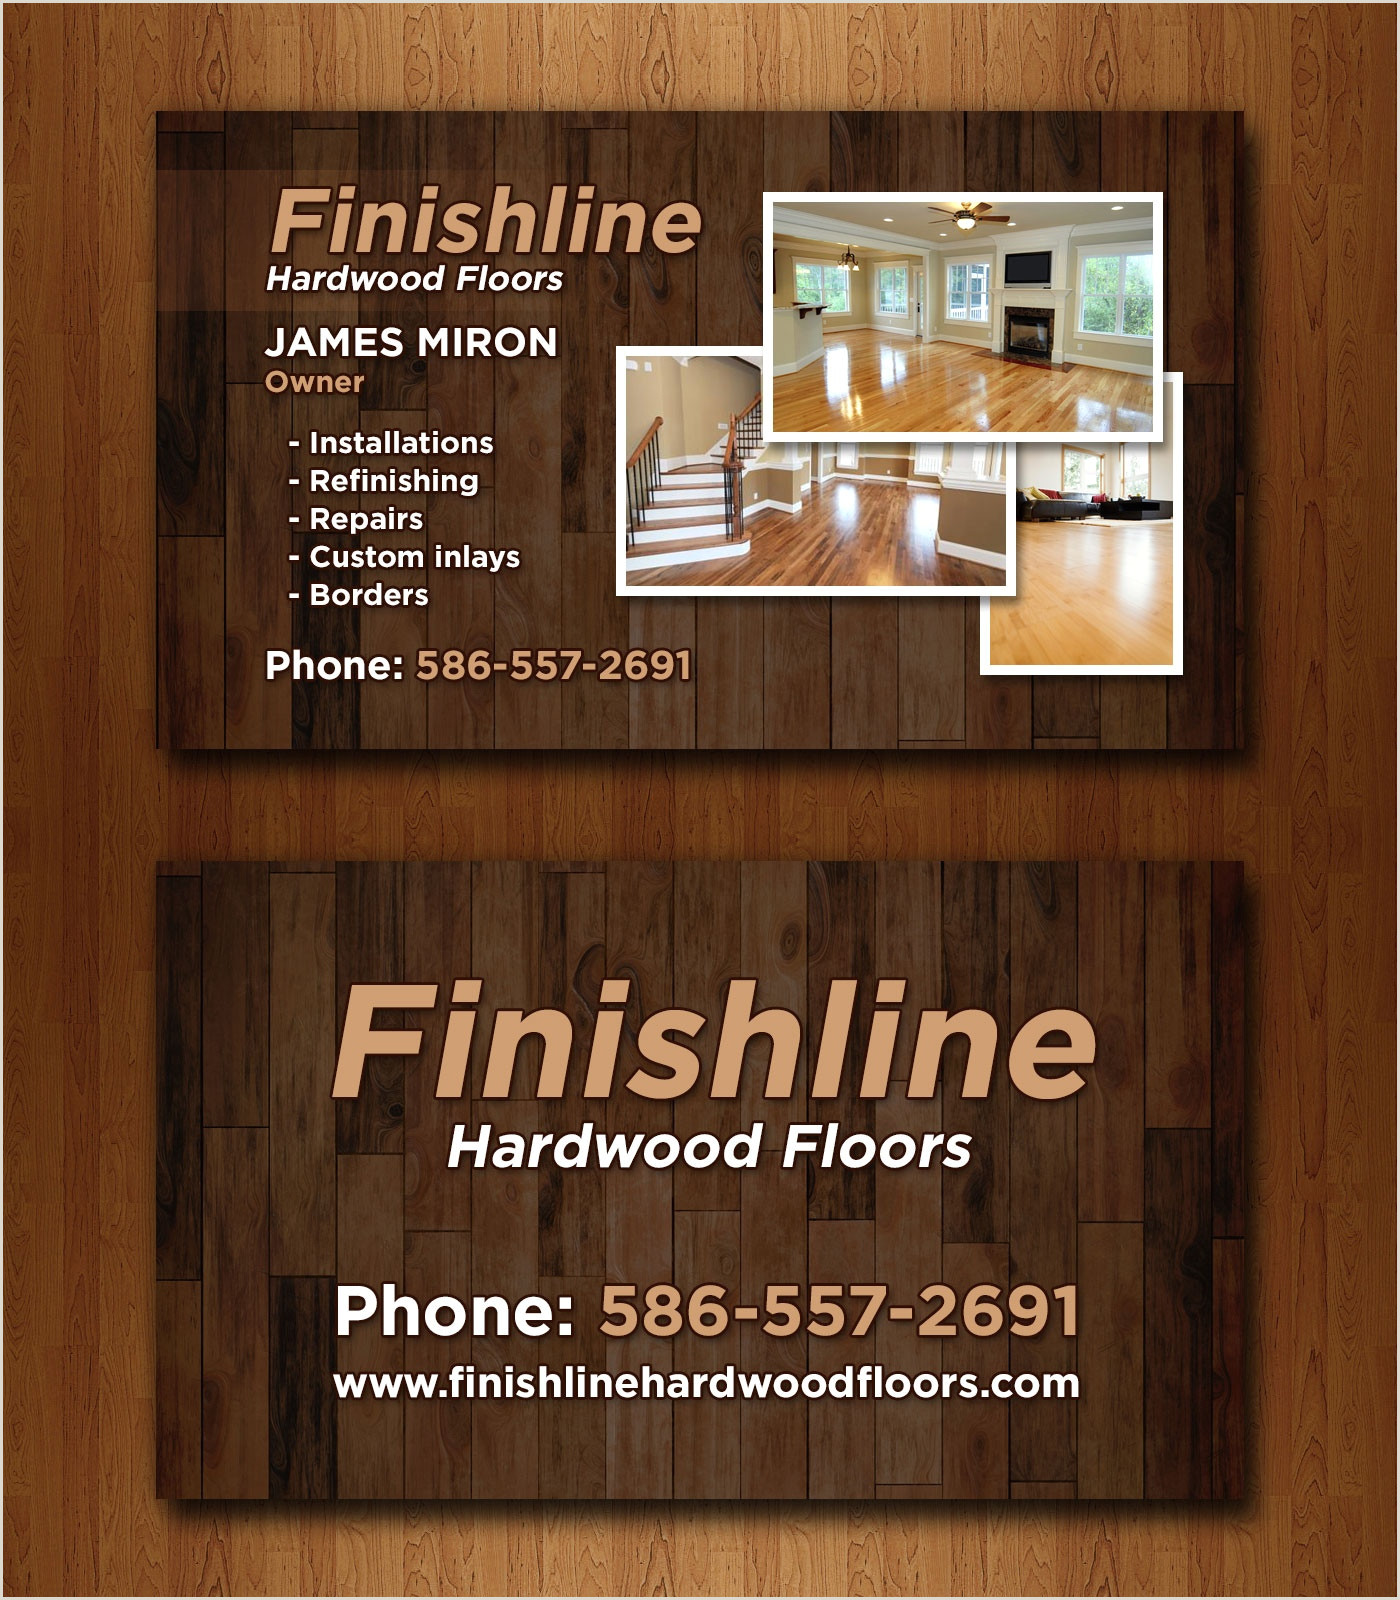 How To Make Business Cards 14 Popular Hardwood Flooring Business Card Template